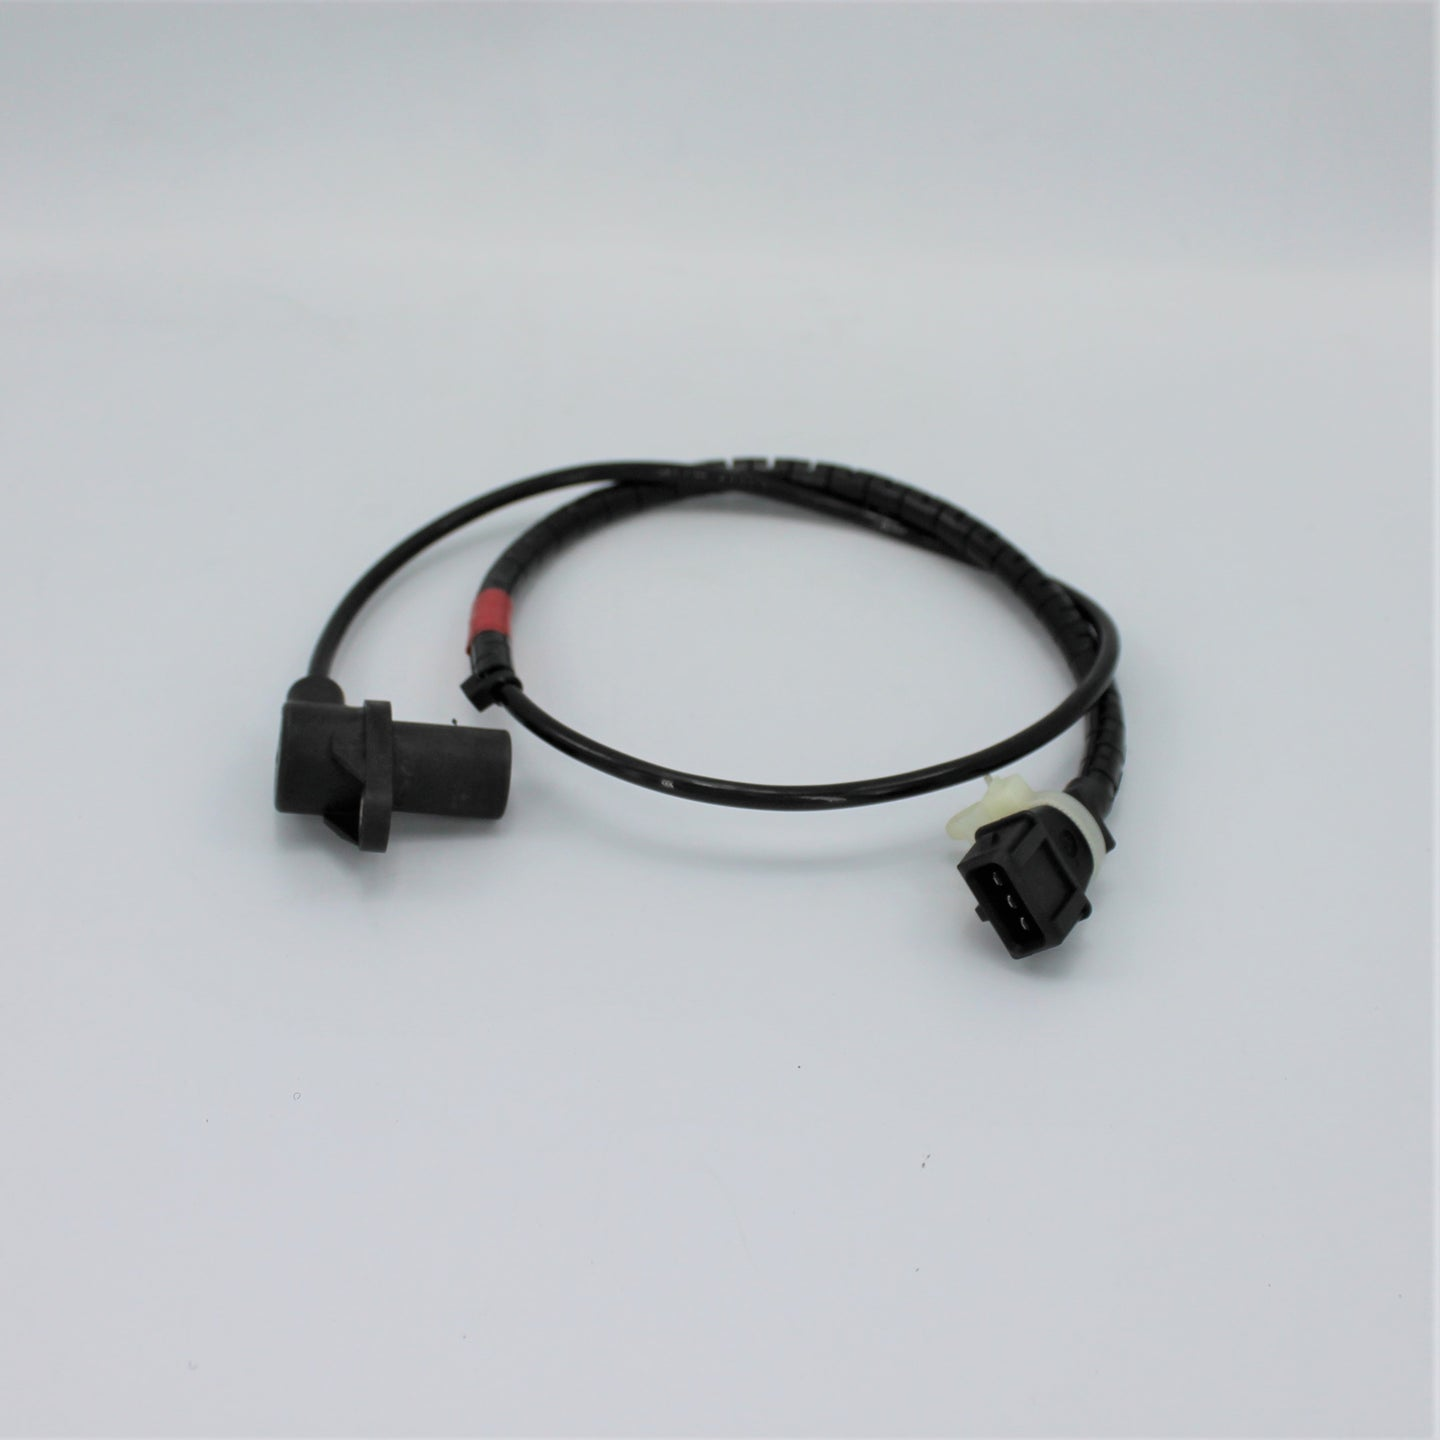 OEM VESPA SPEED SENSOR